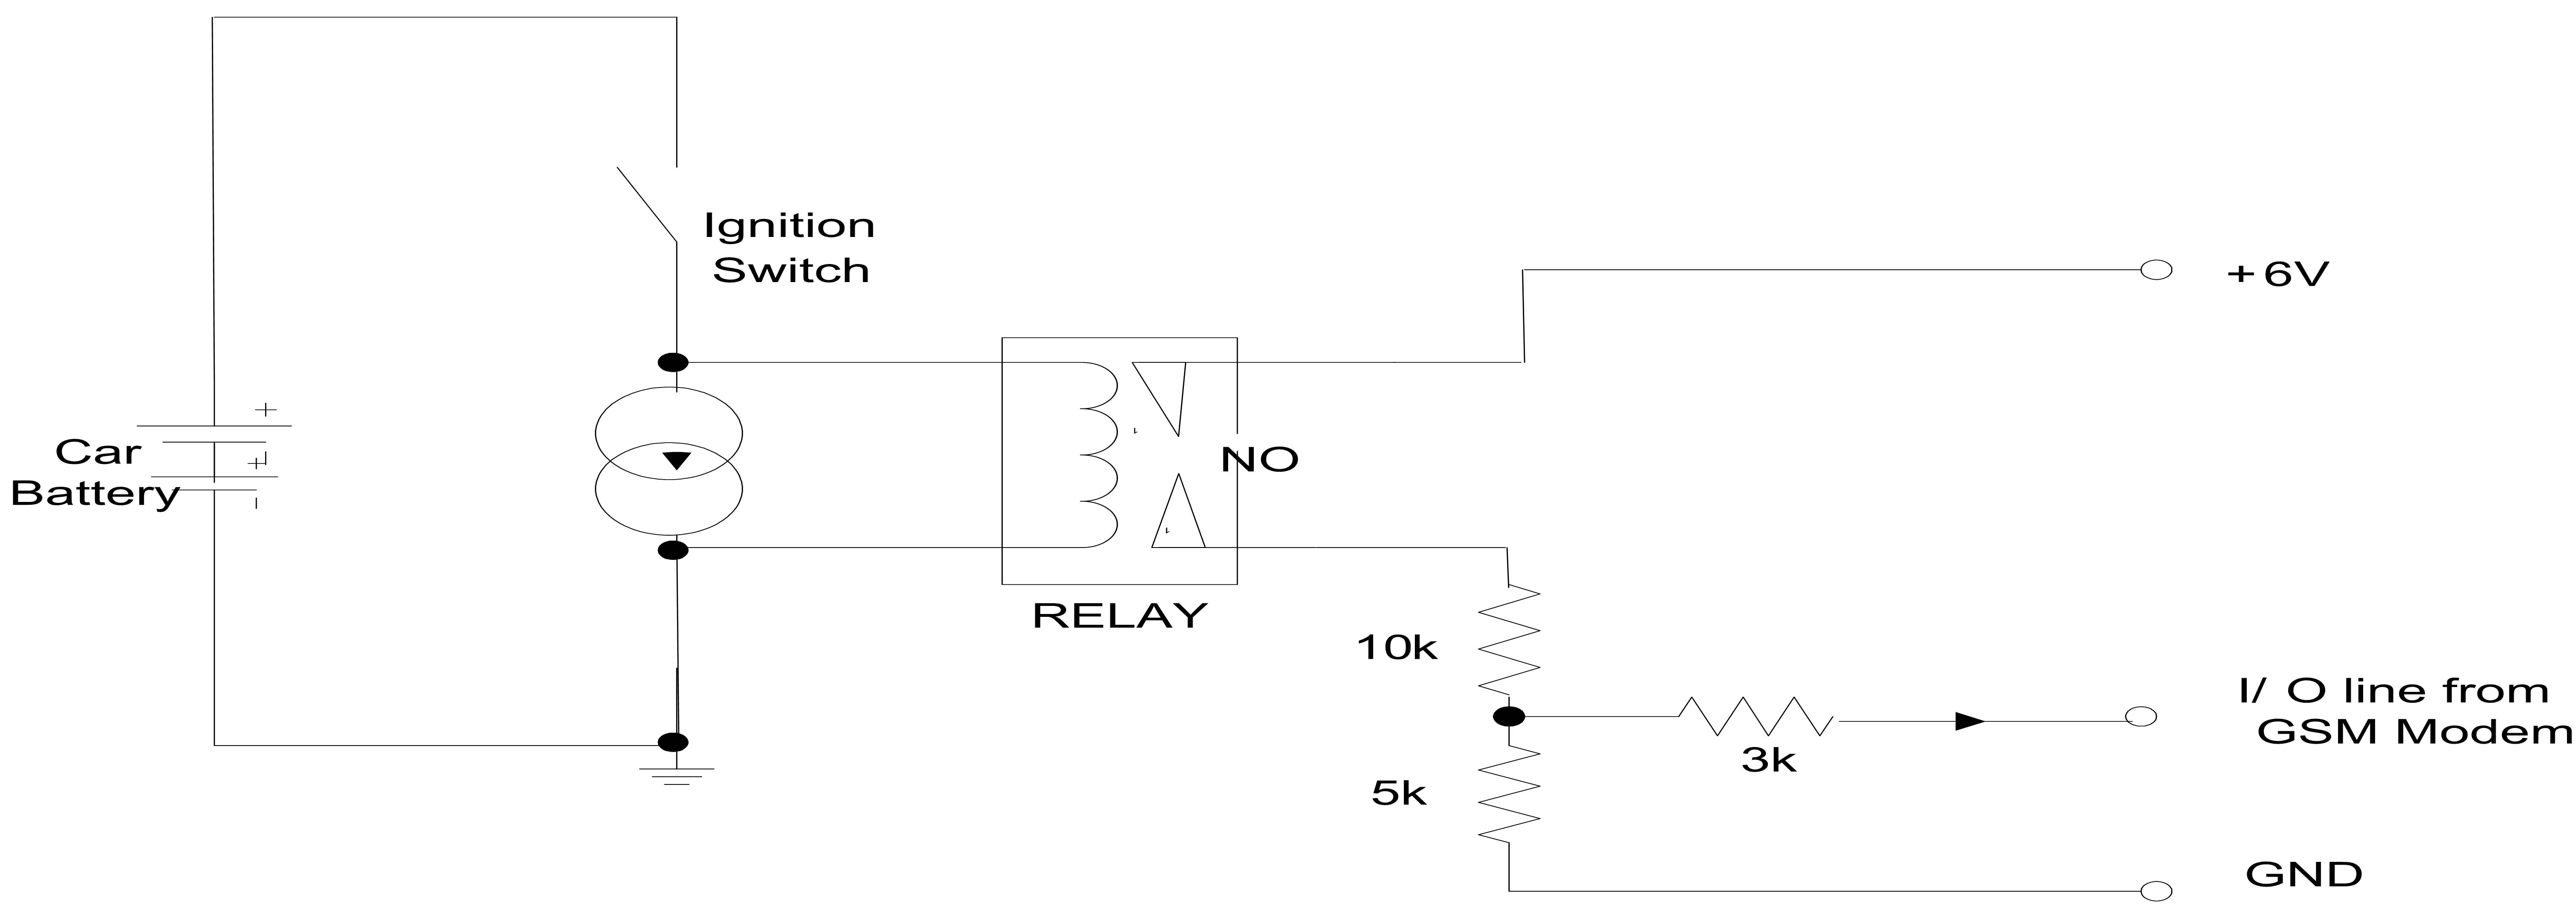 Break The Ignition Circuit Automatically Immobilizing The Vehicle